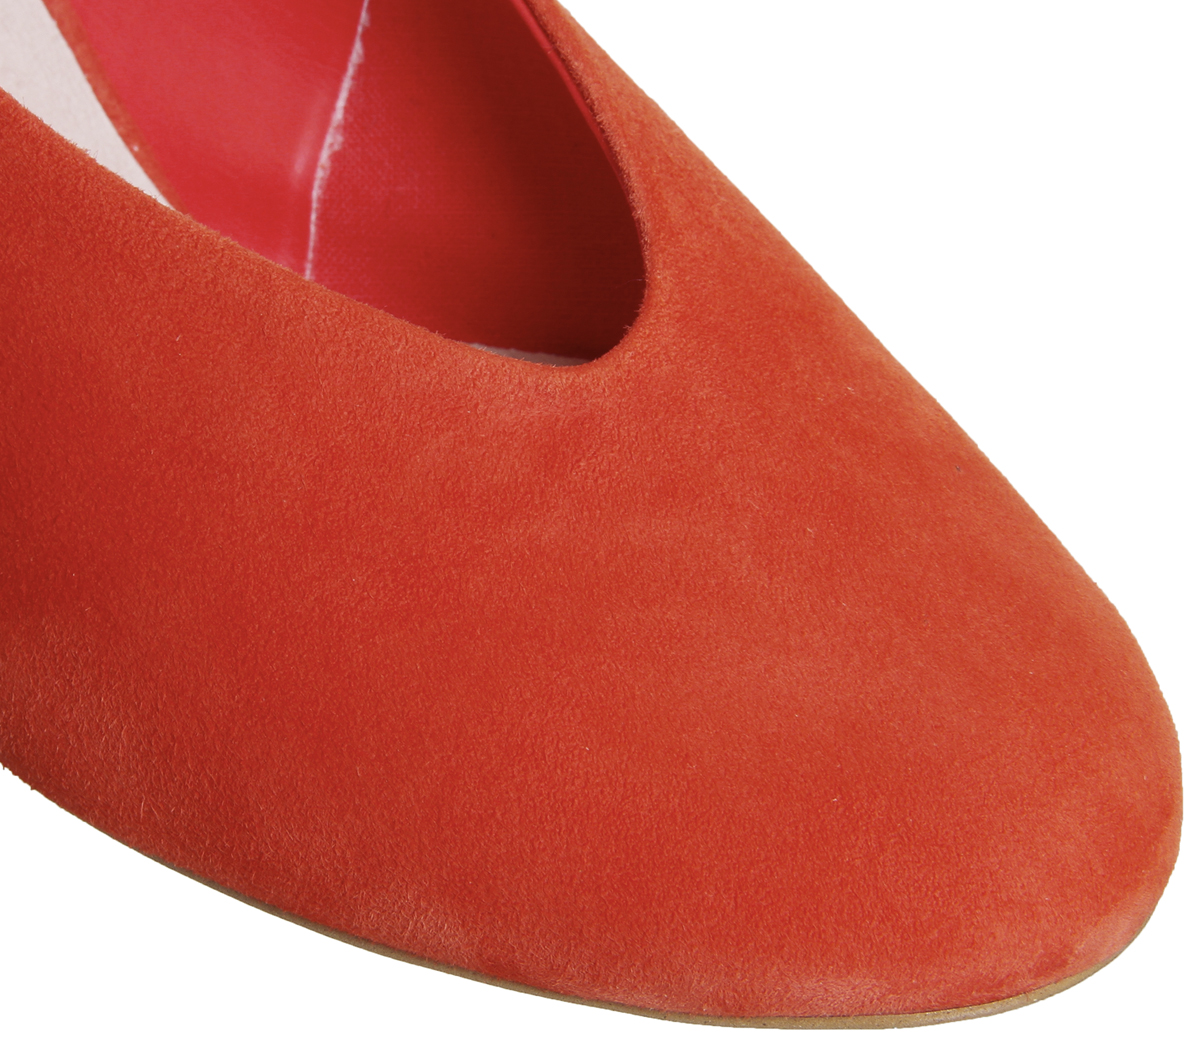 Womens-Office-Magical-Bow-Slingback-Heels-Red-Suede-Heels thumbnail 11